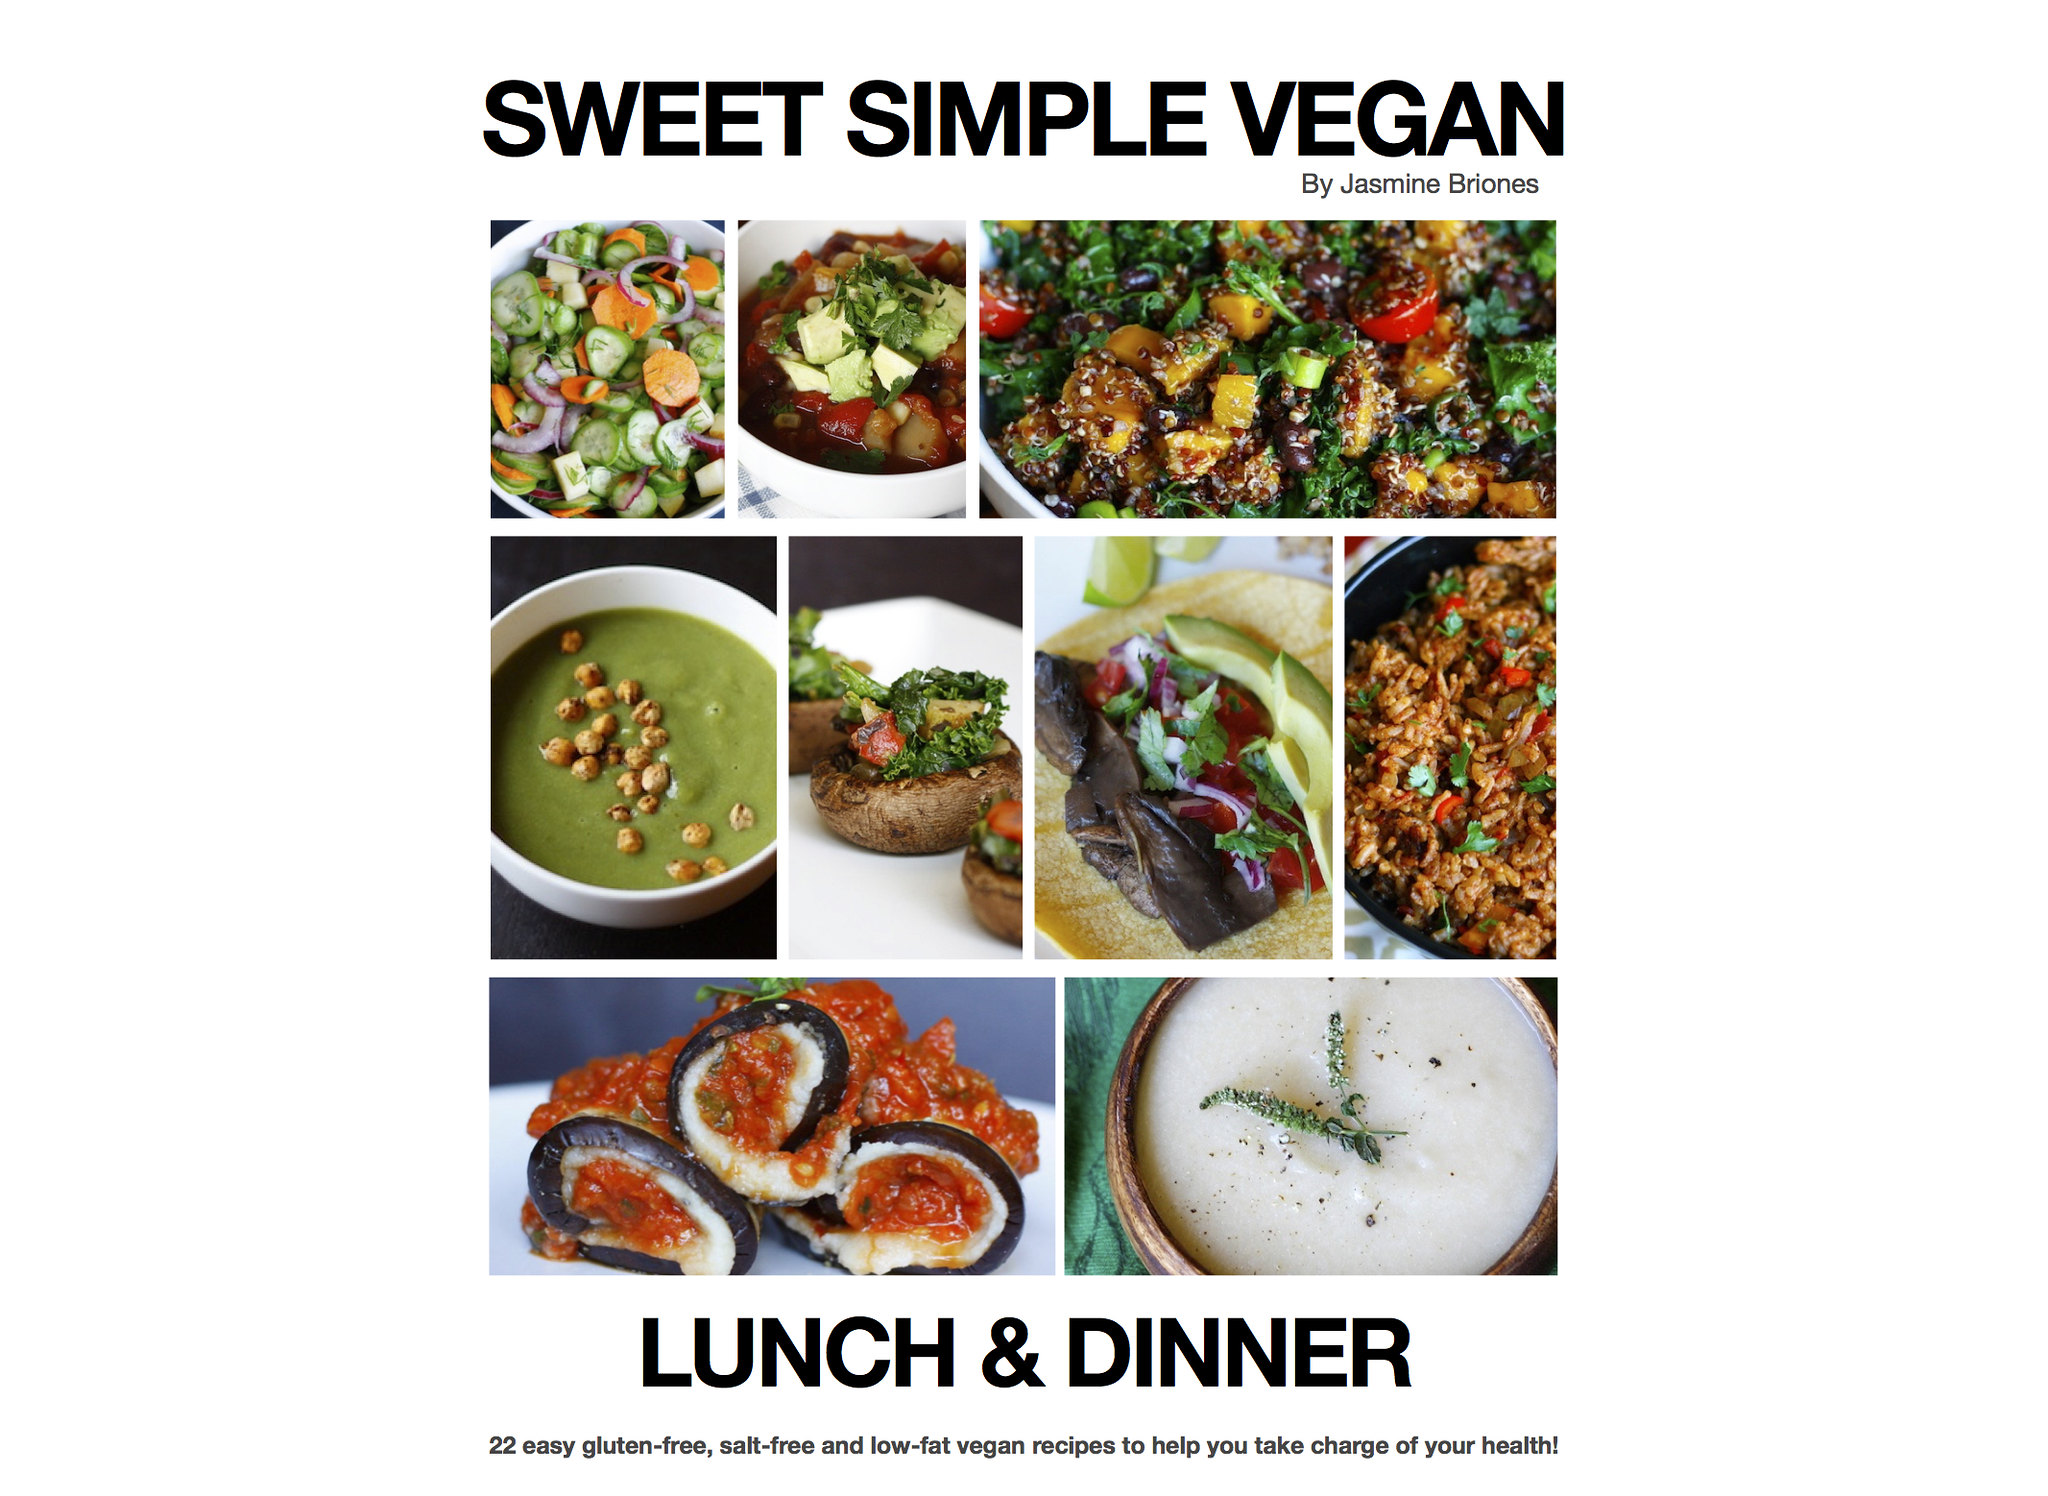 Healthy Low-Fat Vegan Lunch & Dinner Ebook sweetsimplevegan.com